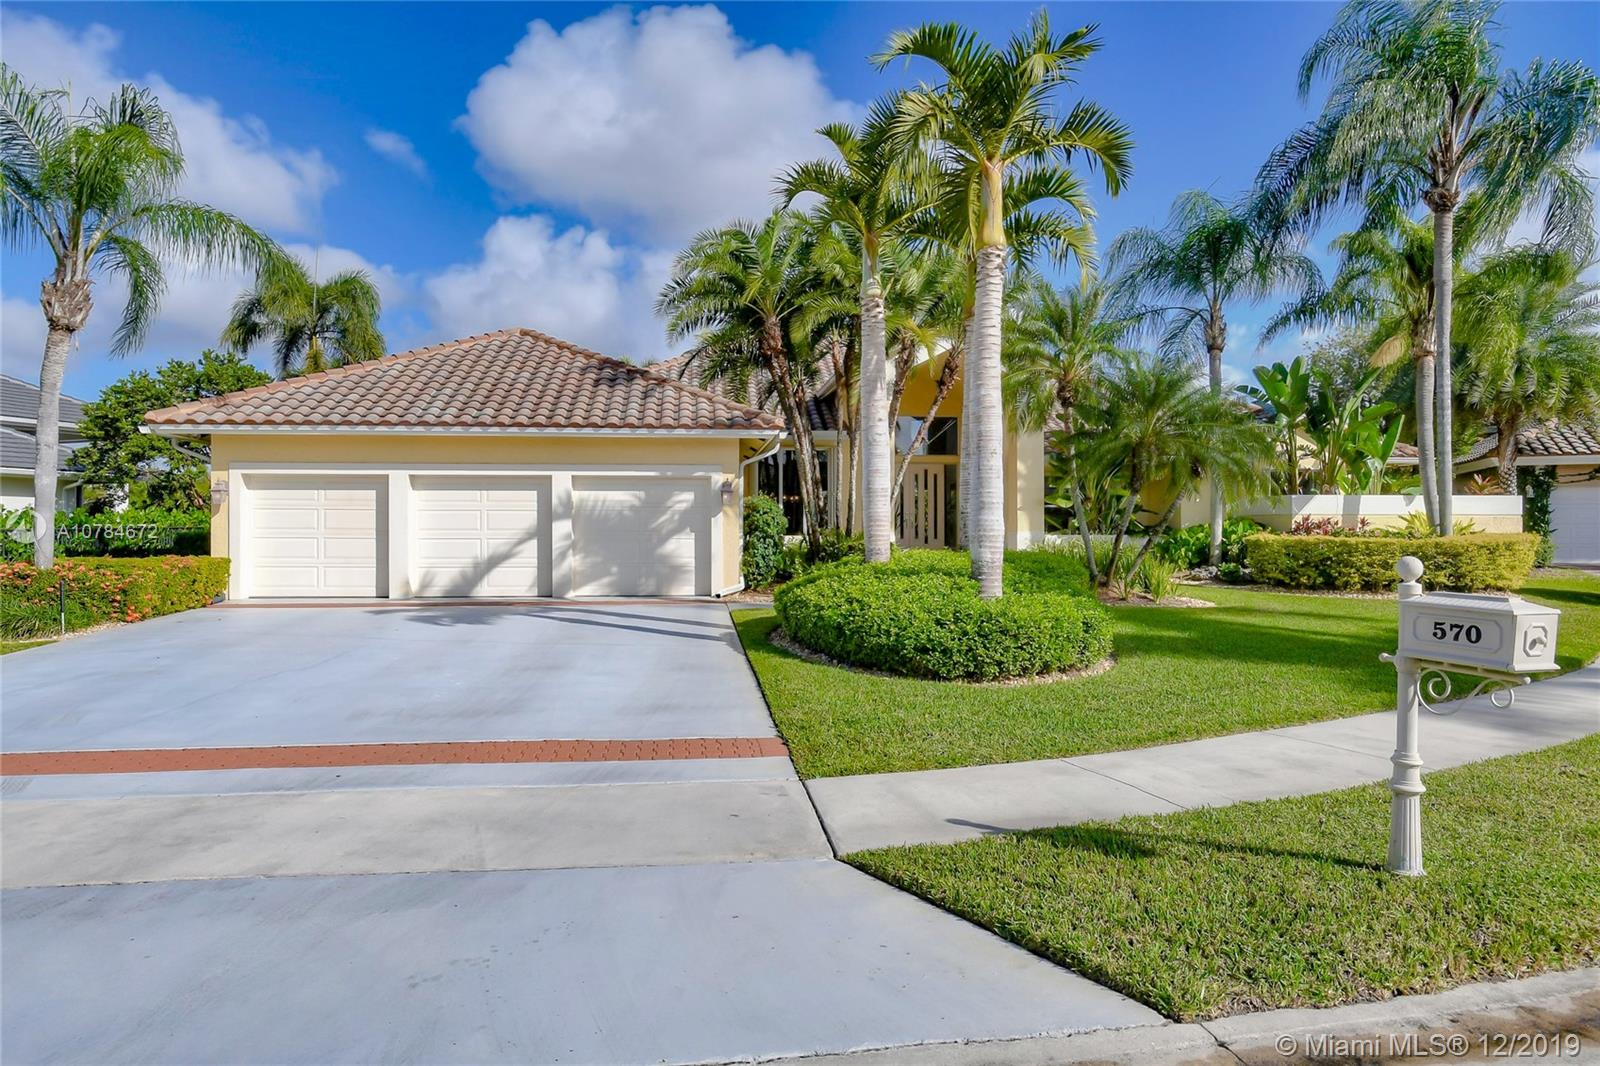 Tucked on a quiet Royal Palm tree lined cul de sac street with lush mature landscaping and endless lake views. Walking distance to Elementary and middle school. Oversized 17,646 sqft lot. Meticulously maintained, this custom one story shows light and bright. Feel the breeze as you sit on your private covered patio, overlooking vertical pool with peaceful lake views. Fully fenced and lushly landscaped. Renovated kitchen with wood cabinetry, granite countertops and Stainless Steel appliances. Full function bar. Great spacious house for entertaining family and friends. Master bath with roman tub, granite countertops and large shower. Volume ceilings in living areas and family room. Neutral decor throughout.3 car garage. New Roof 2007 A/C 2010